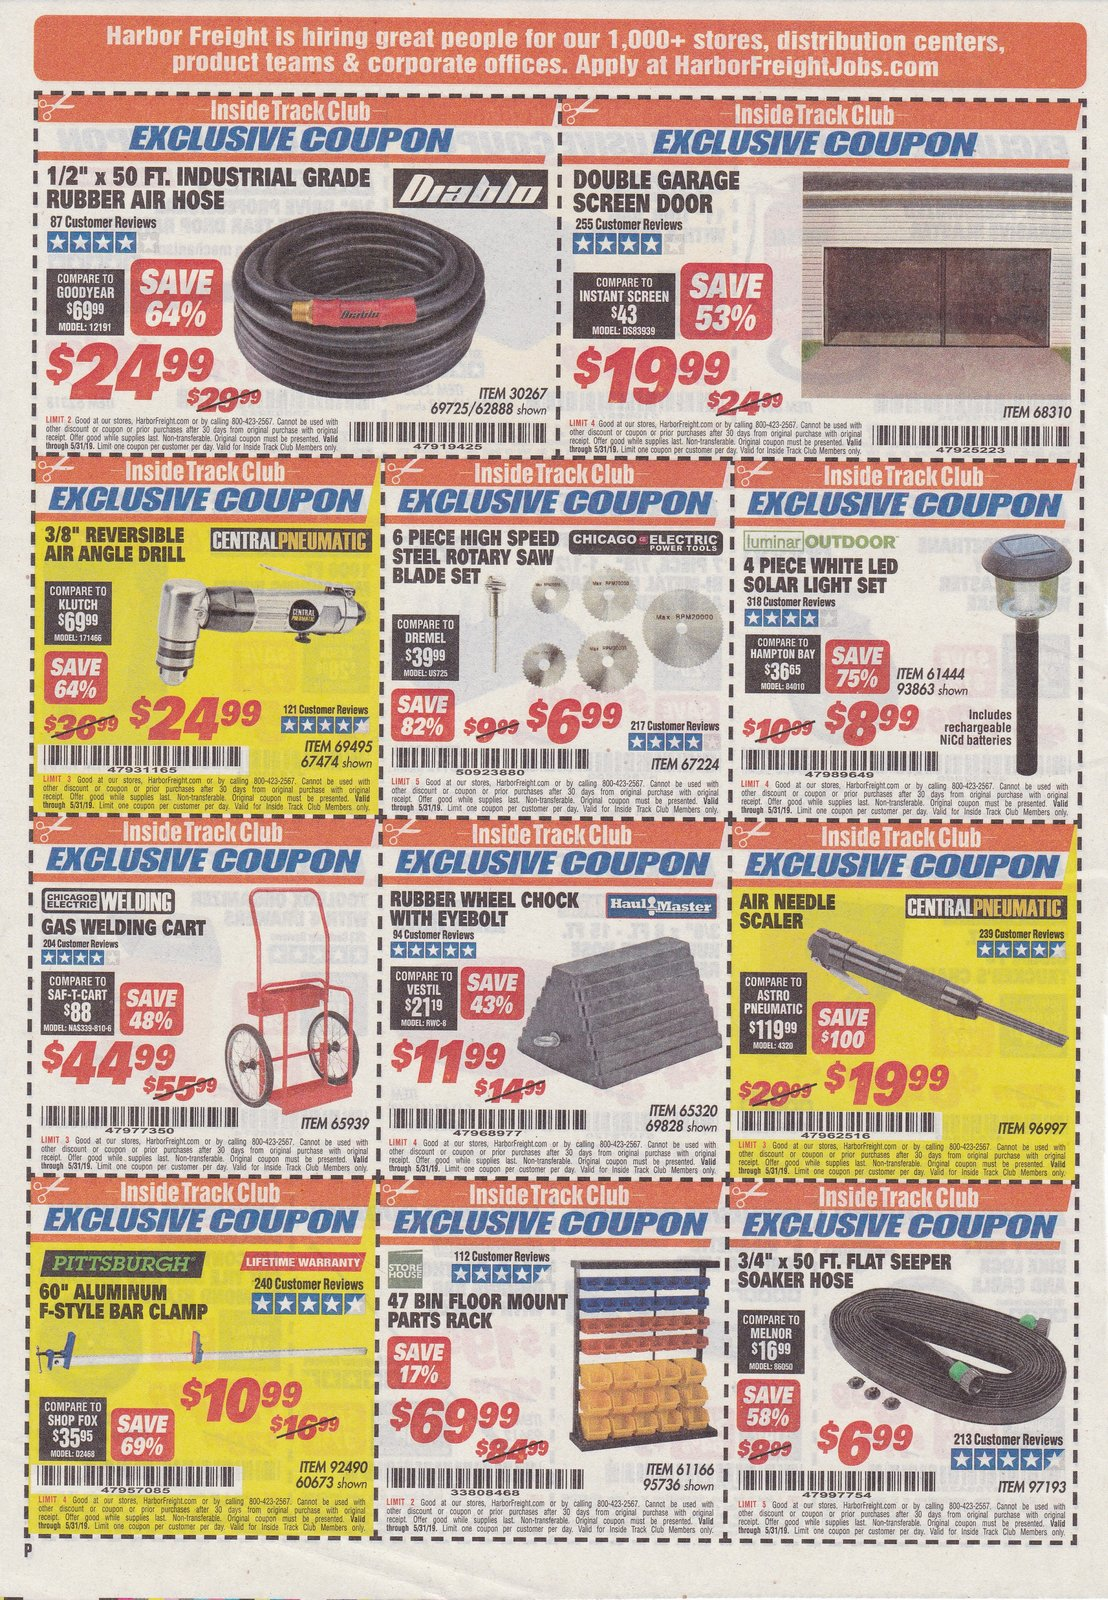 Harbor Freight Inside Track Club Coupons – May 2019